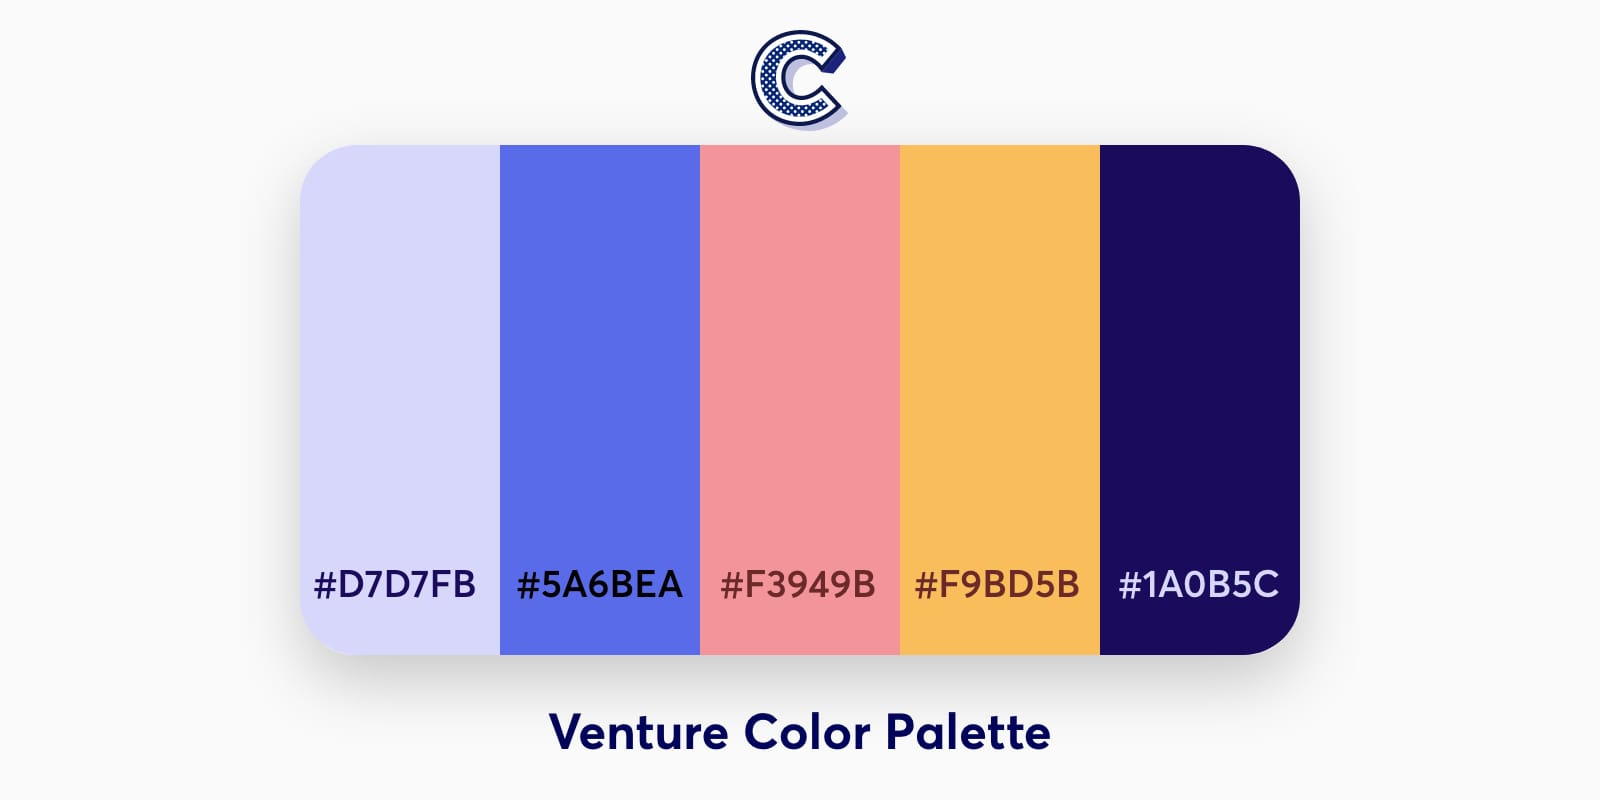 the featured image of venture color palette